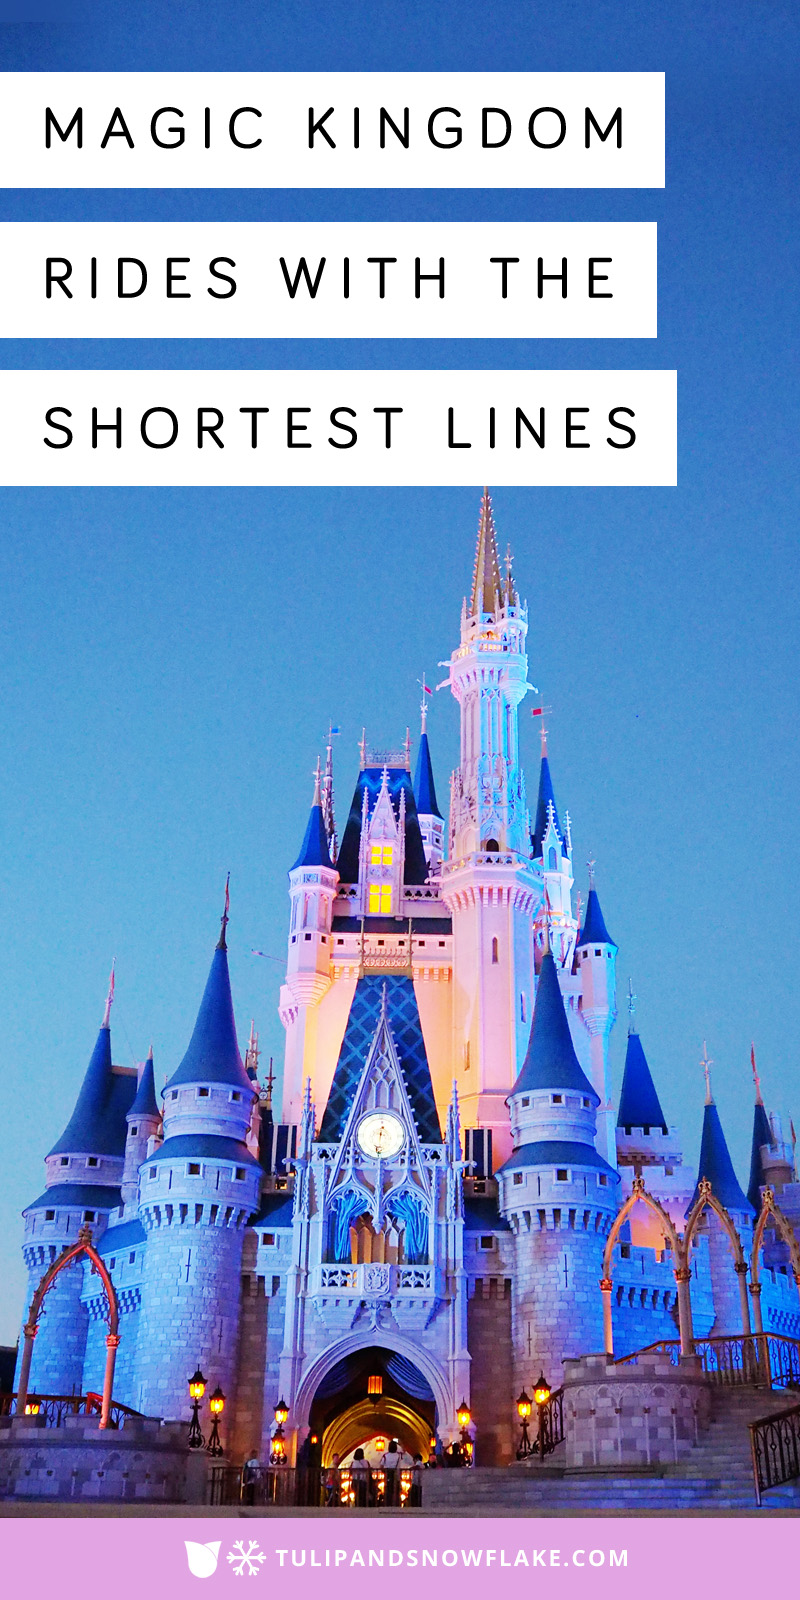 Magic Kingdom Rides attractions with short lines